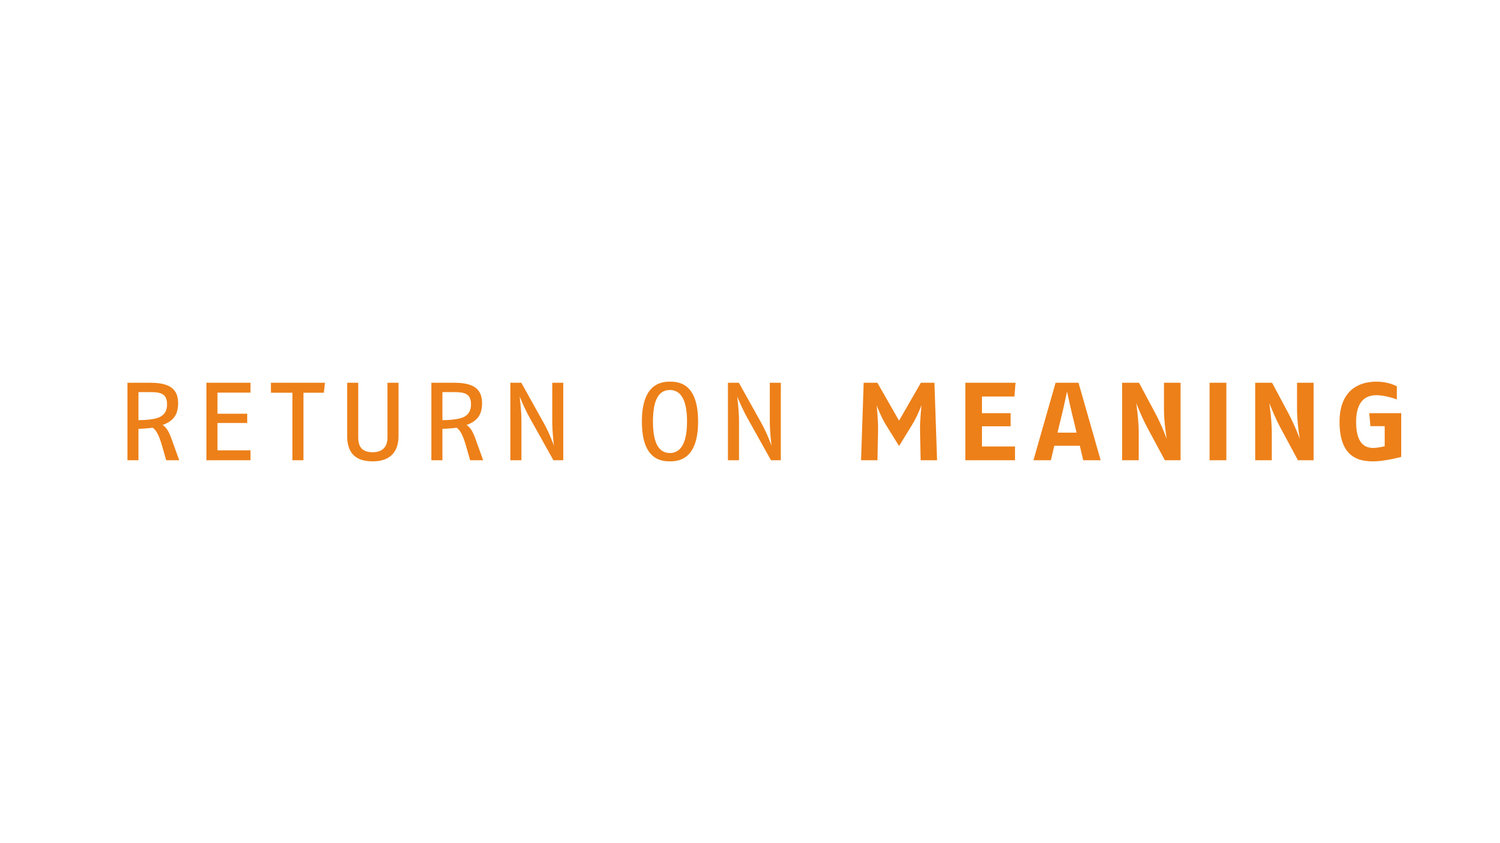 RETURN ON MEANING